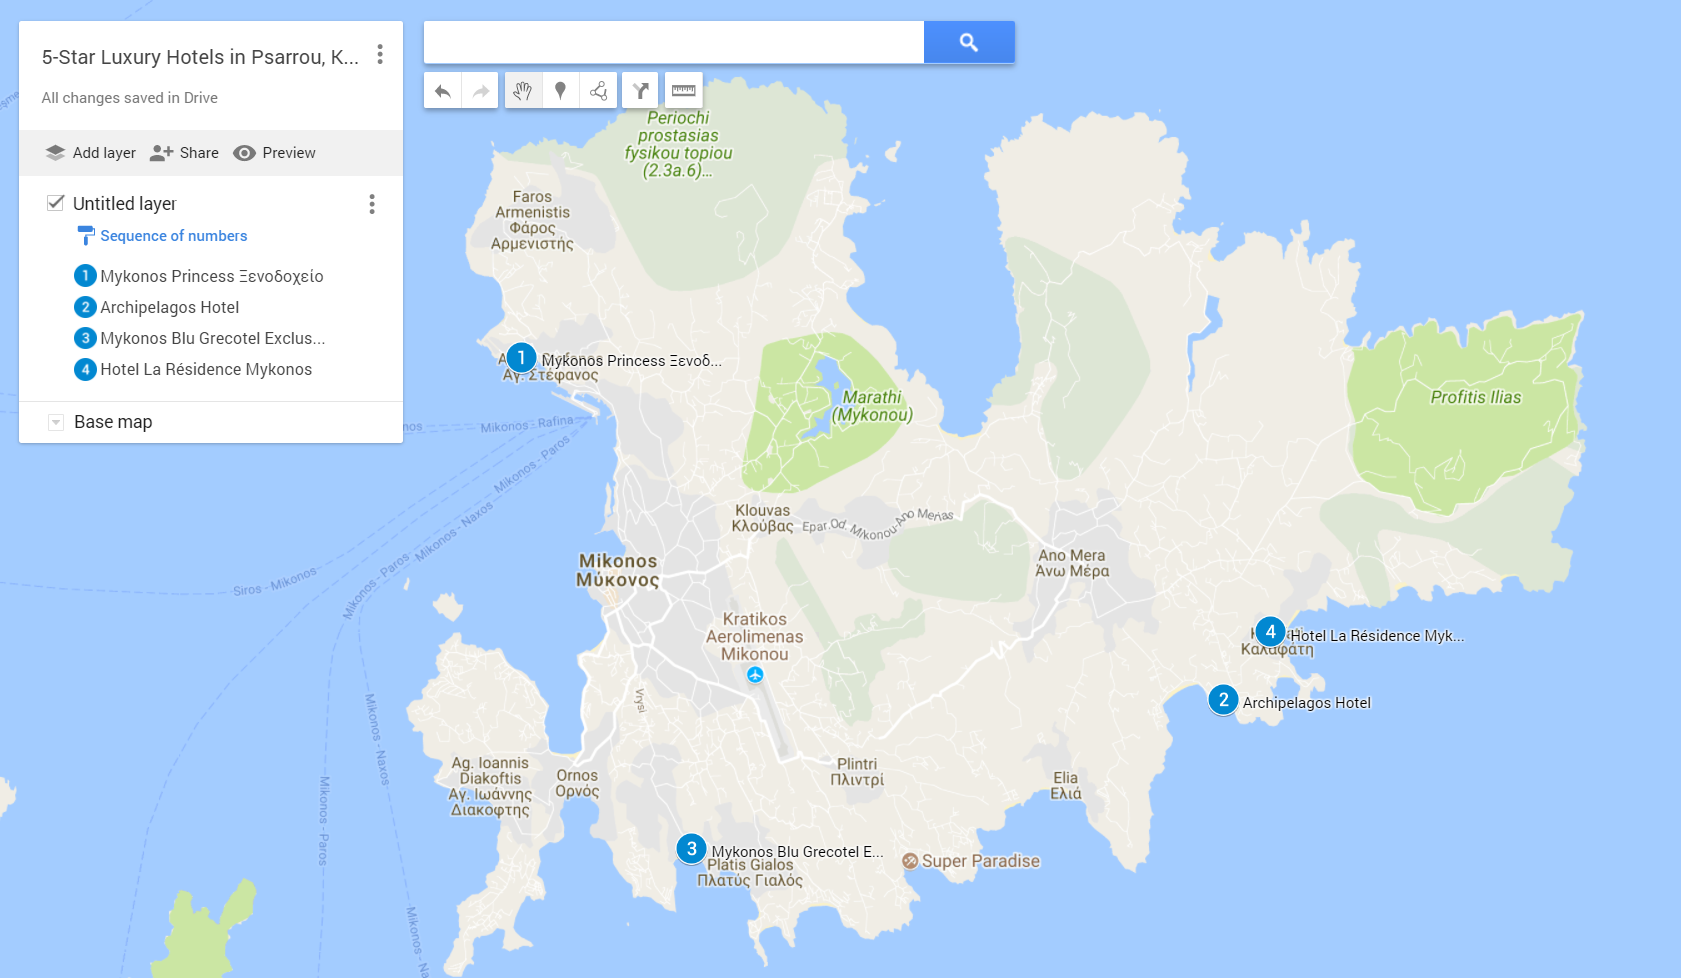 A google map with all the 5-star hotels in Agios Stefanos, Kalo Livadi, PSarou and Kalafati beach